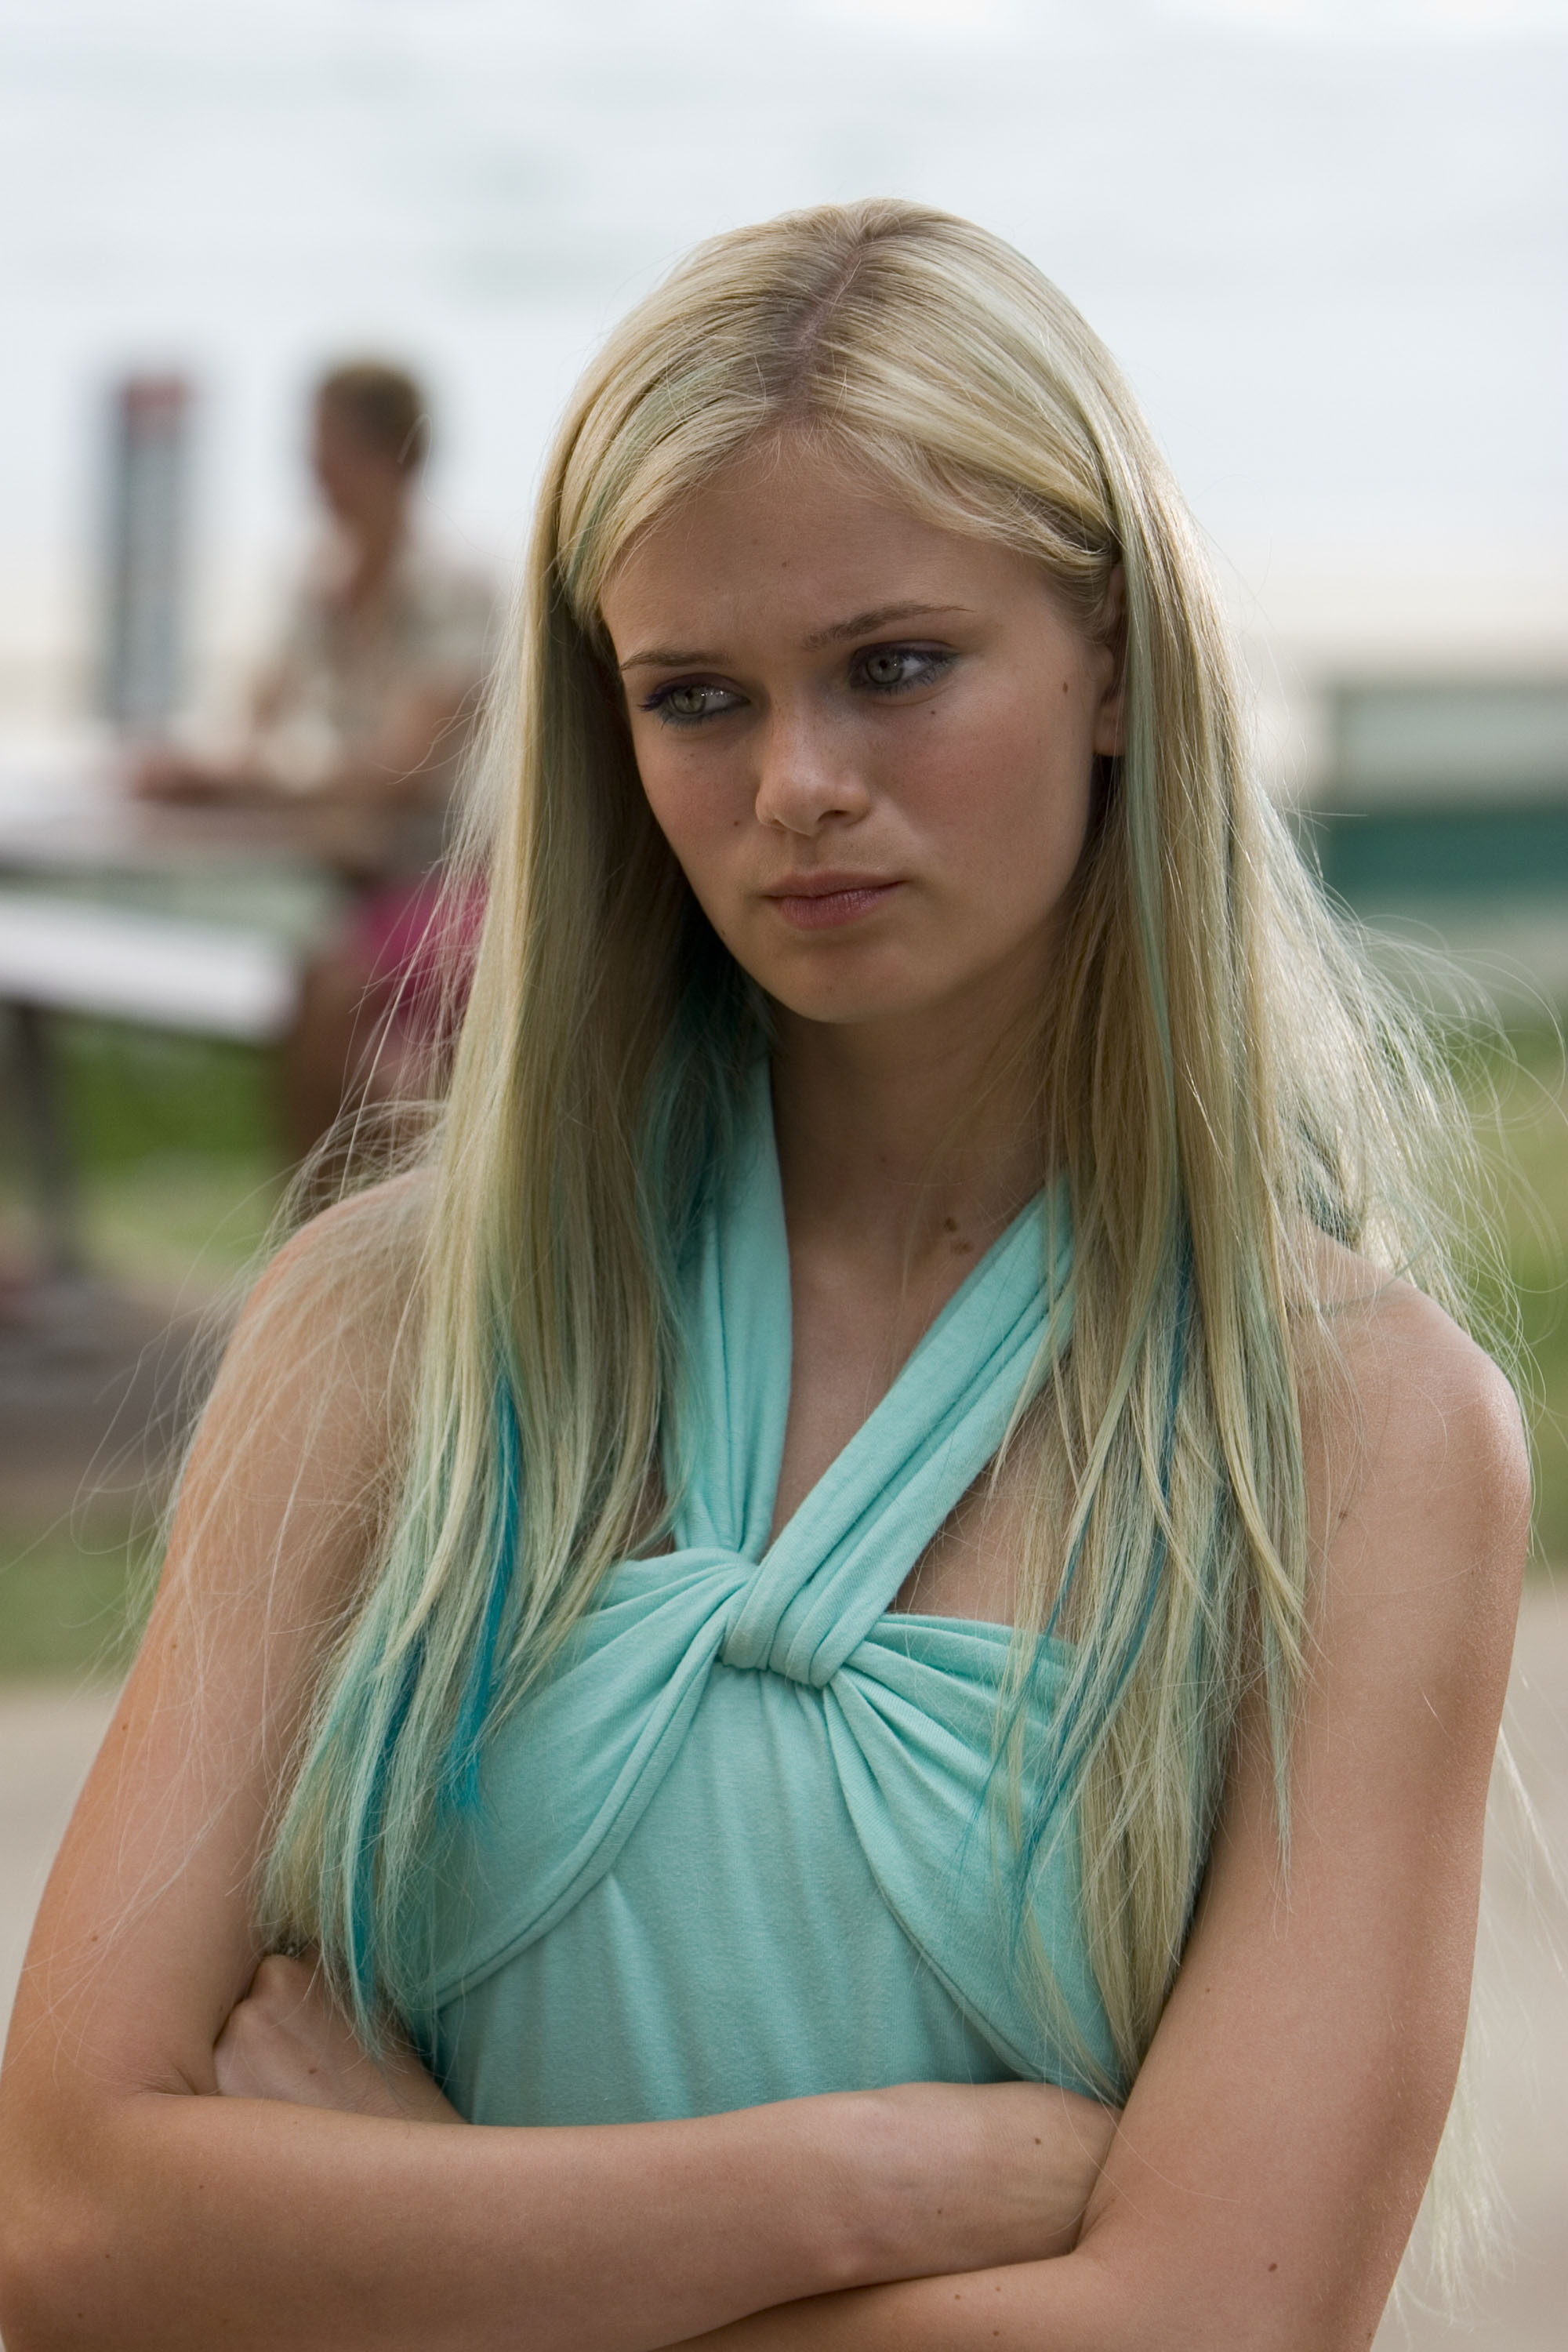 Digitalminx.com - Actresses - Sara Paxton - Page 1